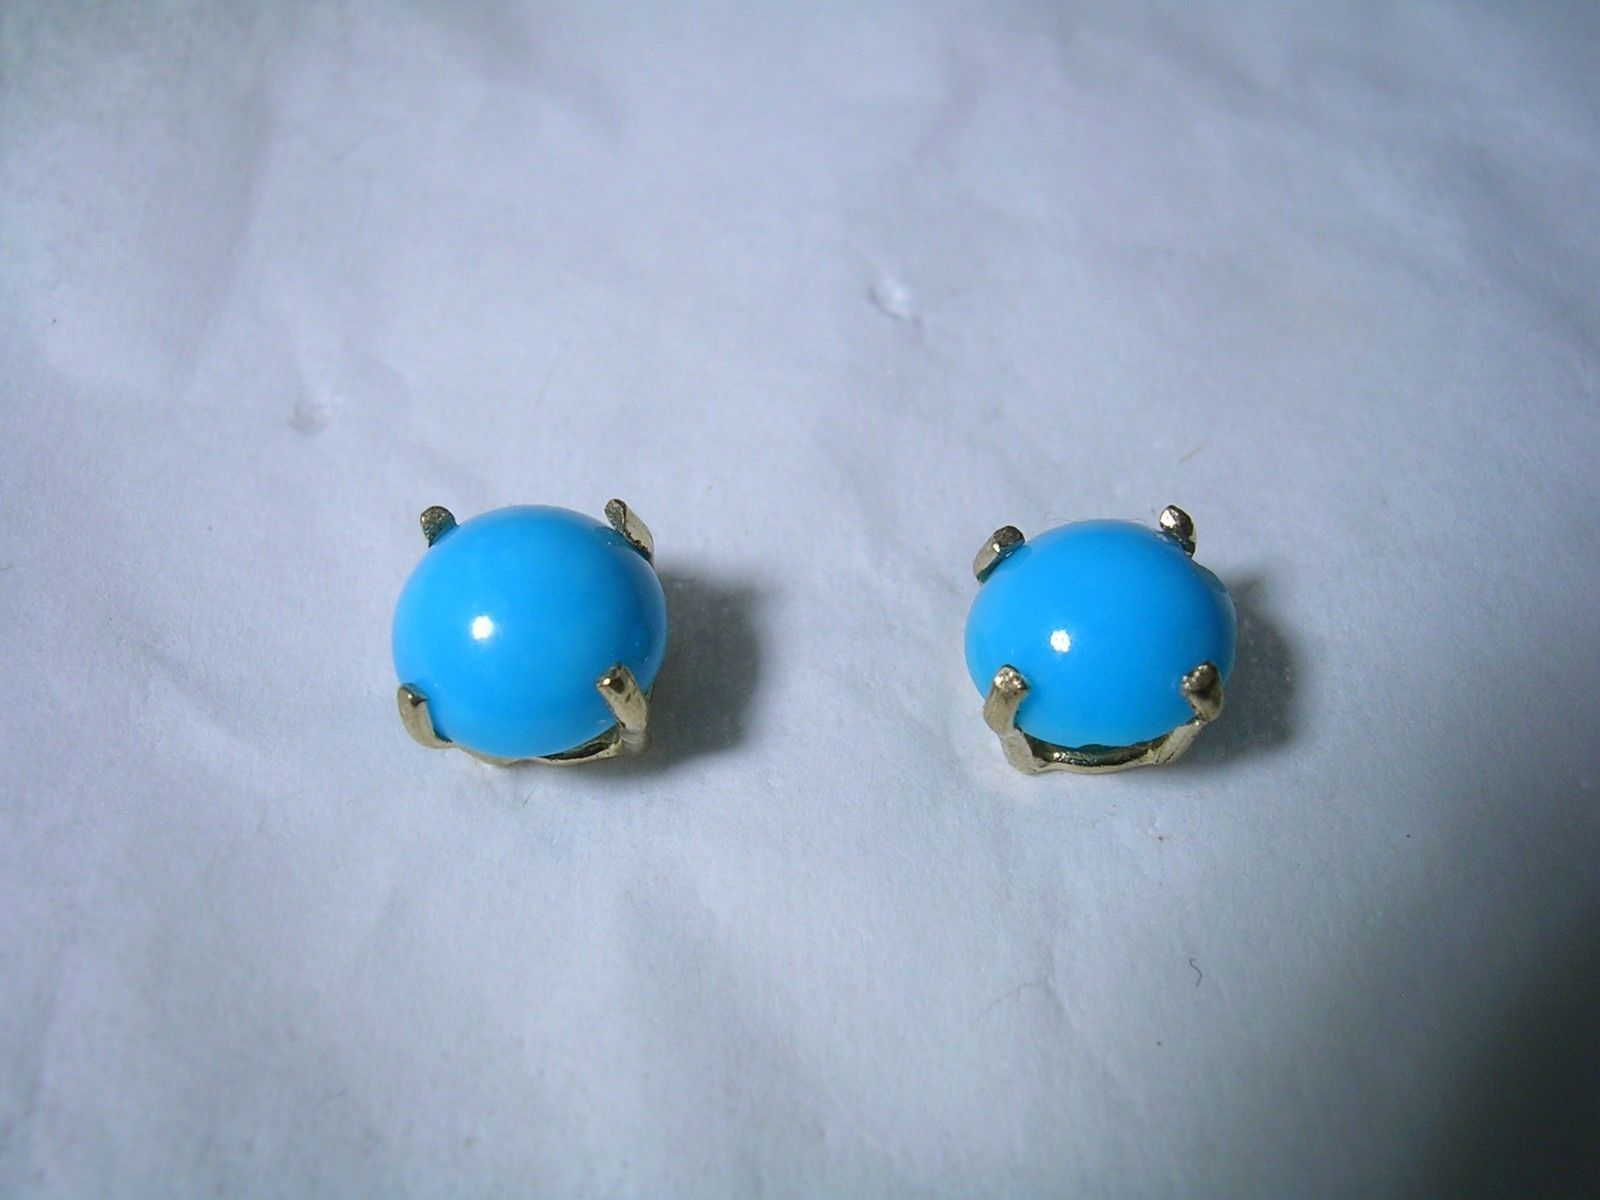 Primary image for TURQUOISE STUD EARRINGS SET IN A 10KT GOLD SETTINGS 4MM